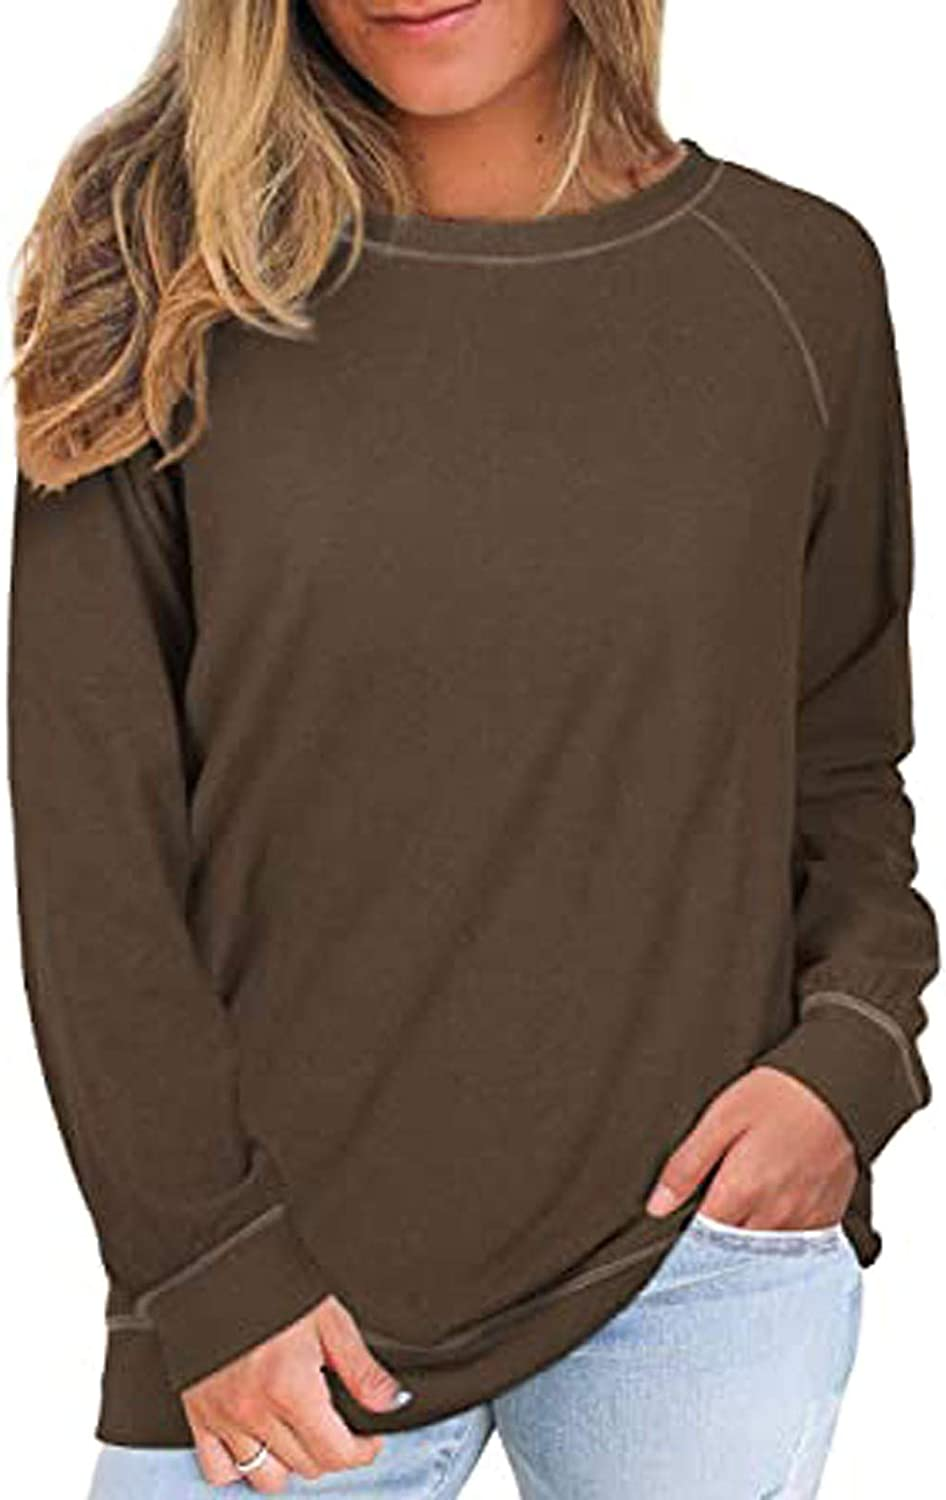 Sweatshirts For Women,Women's Solid Color Long-sleeved Casual Round Neck Large Loose Pullover Sweatshirt Tops